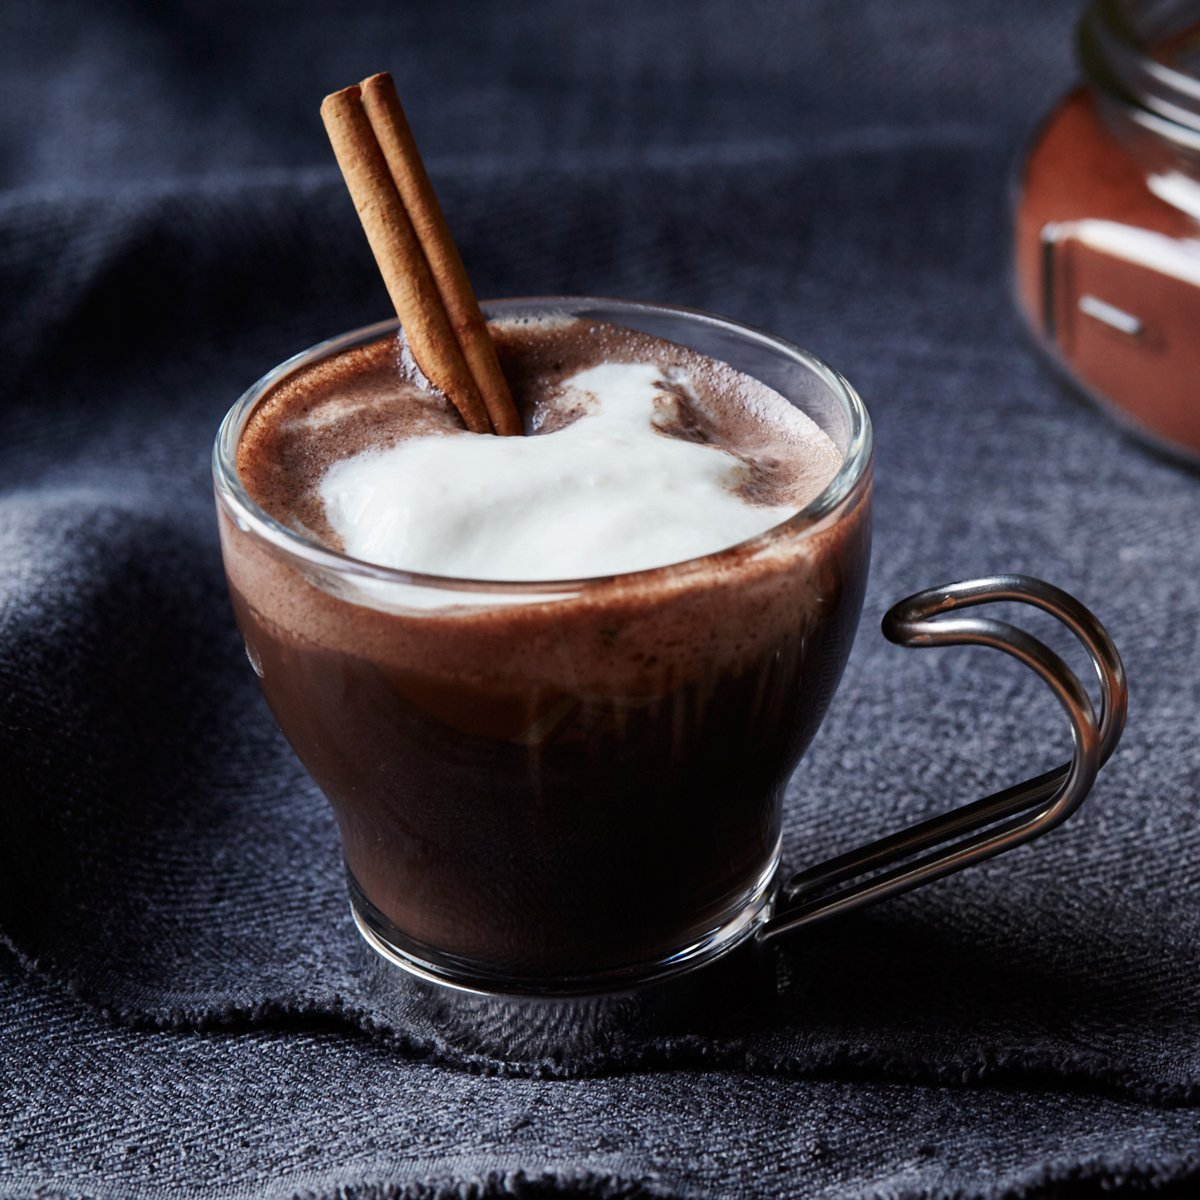 5 Warming Hot Chocolate Recipes to Enjoy This Weekend